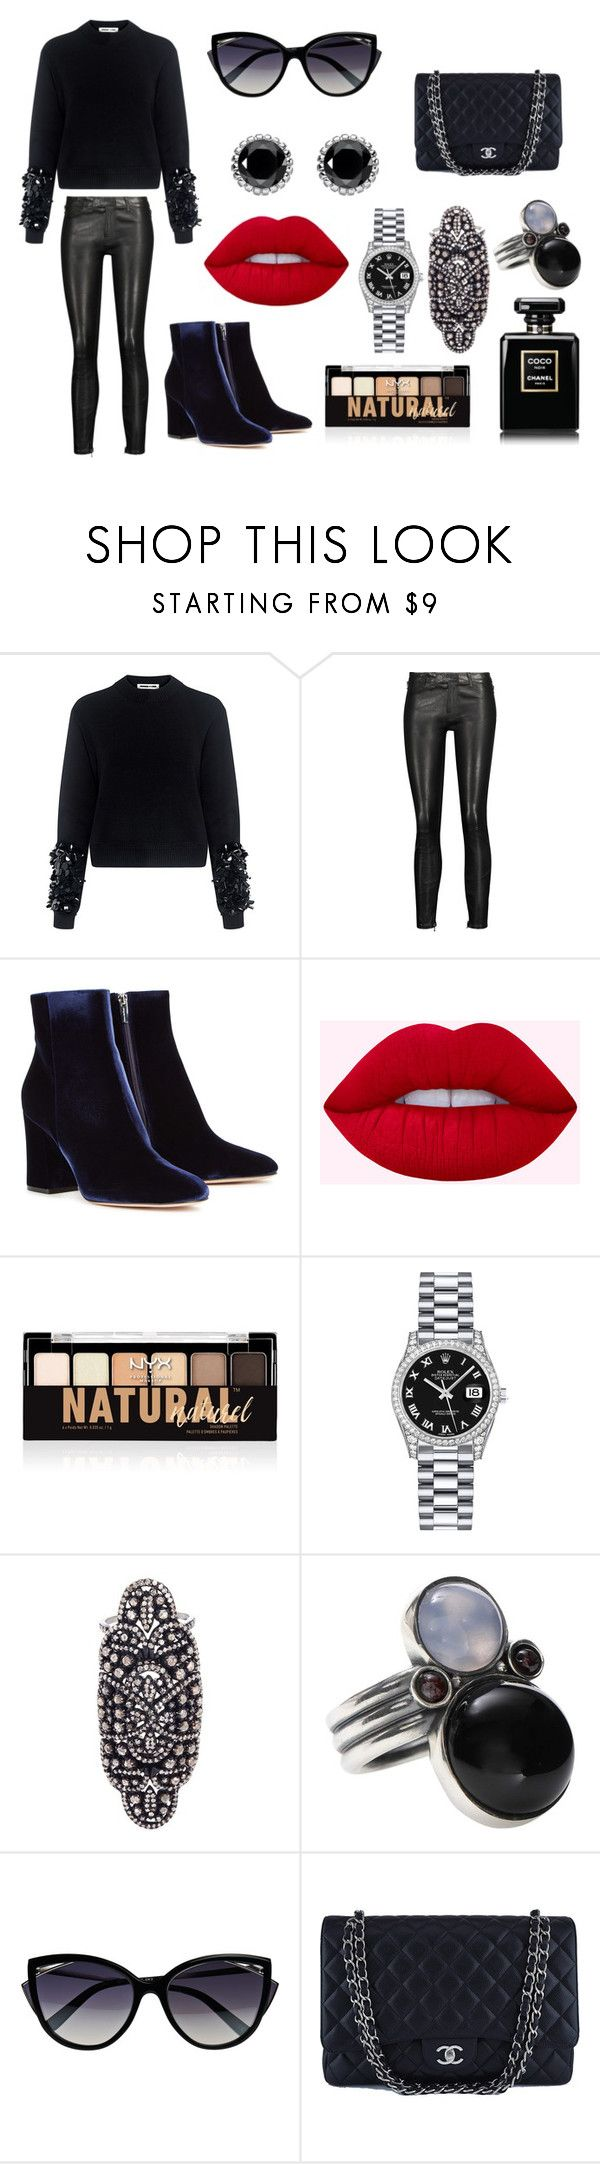 """""""Sin título #2253"""" by sweetblack-21 ❤ liked on Polyvore featuring McQ by Alexander McQueen, J Brand, Gianvito Rossi, NYX, Rolex, Amrapali, Bottega Veneta, La Perla, Chanel and Thomas Sabo"""